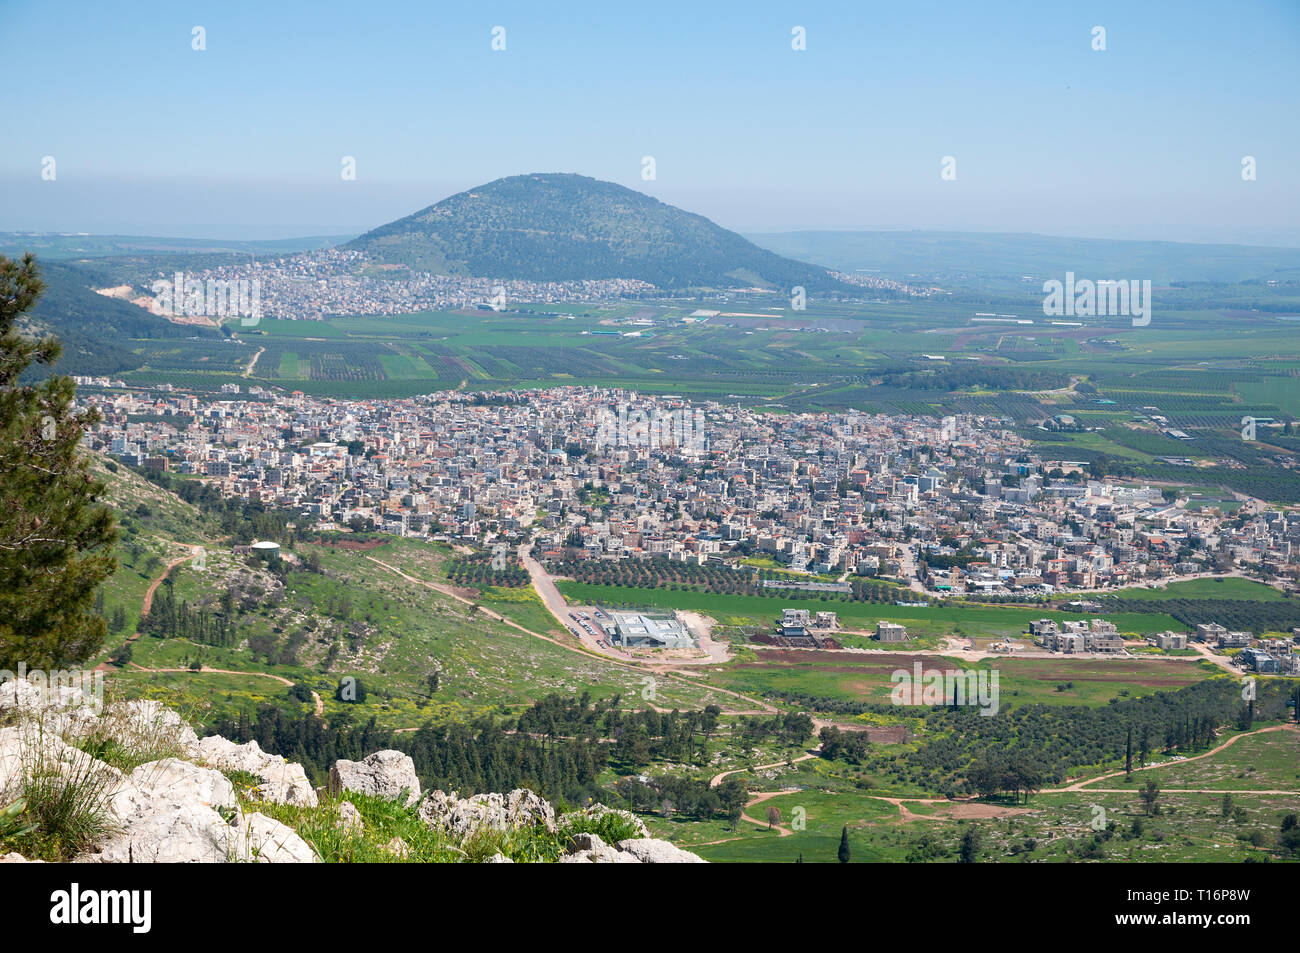 Mount Precipice and a view of Jezreel Valley Stock Photo